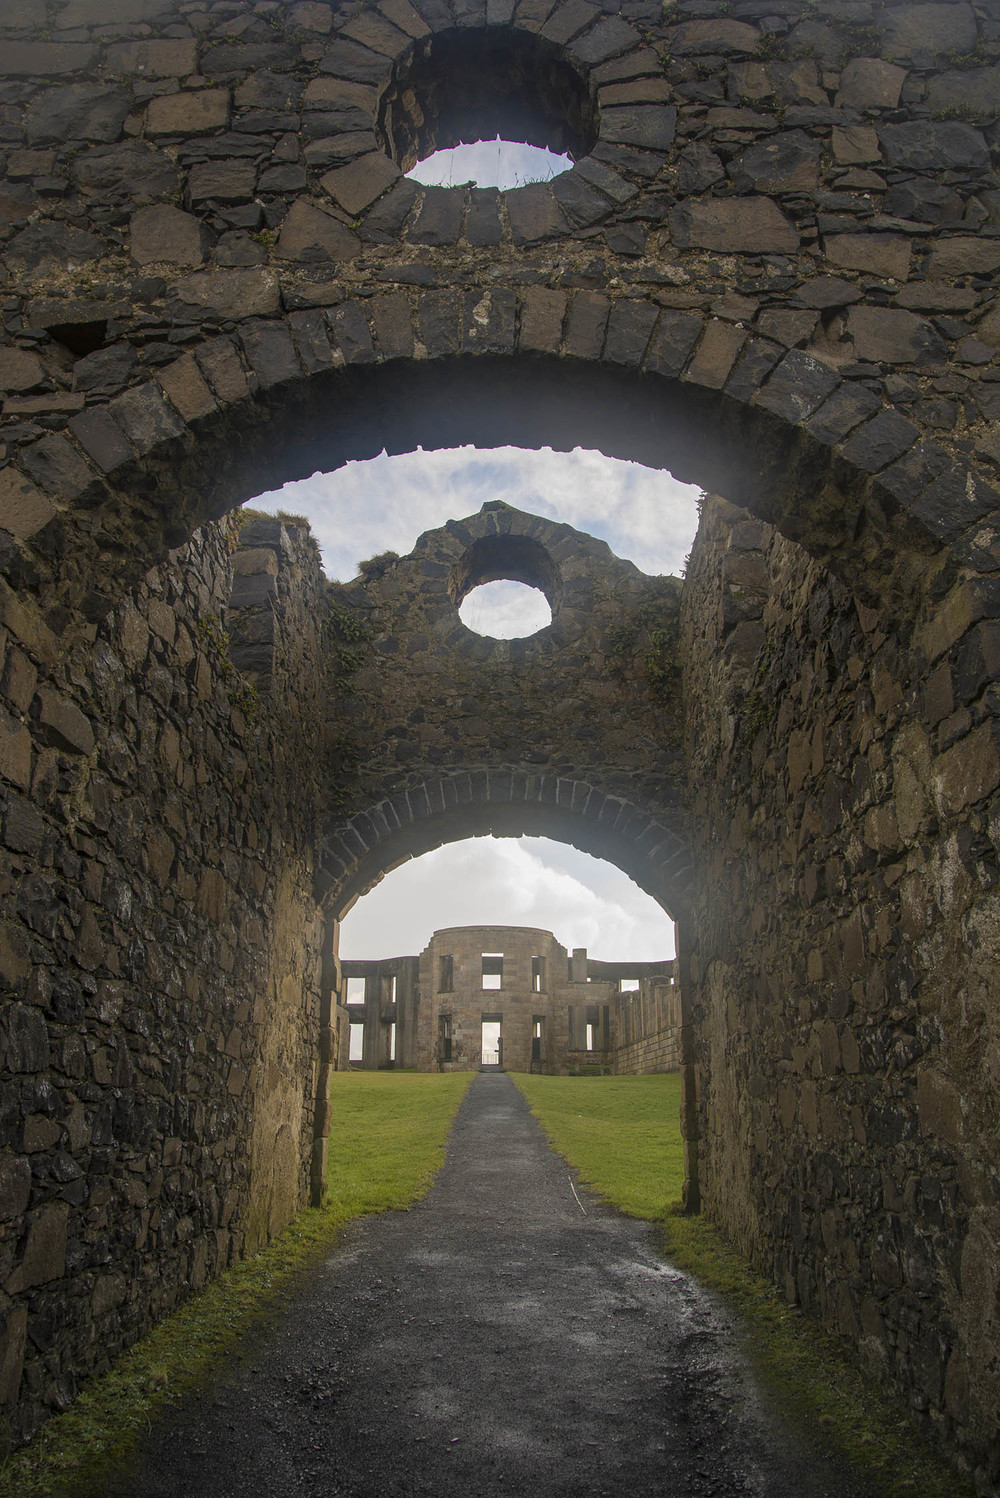 Archway and interior of Downhill Castle, Frederick Hervey, 4th Earl of Bristol, 18th Century, County Londonderry, Northern Ireland